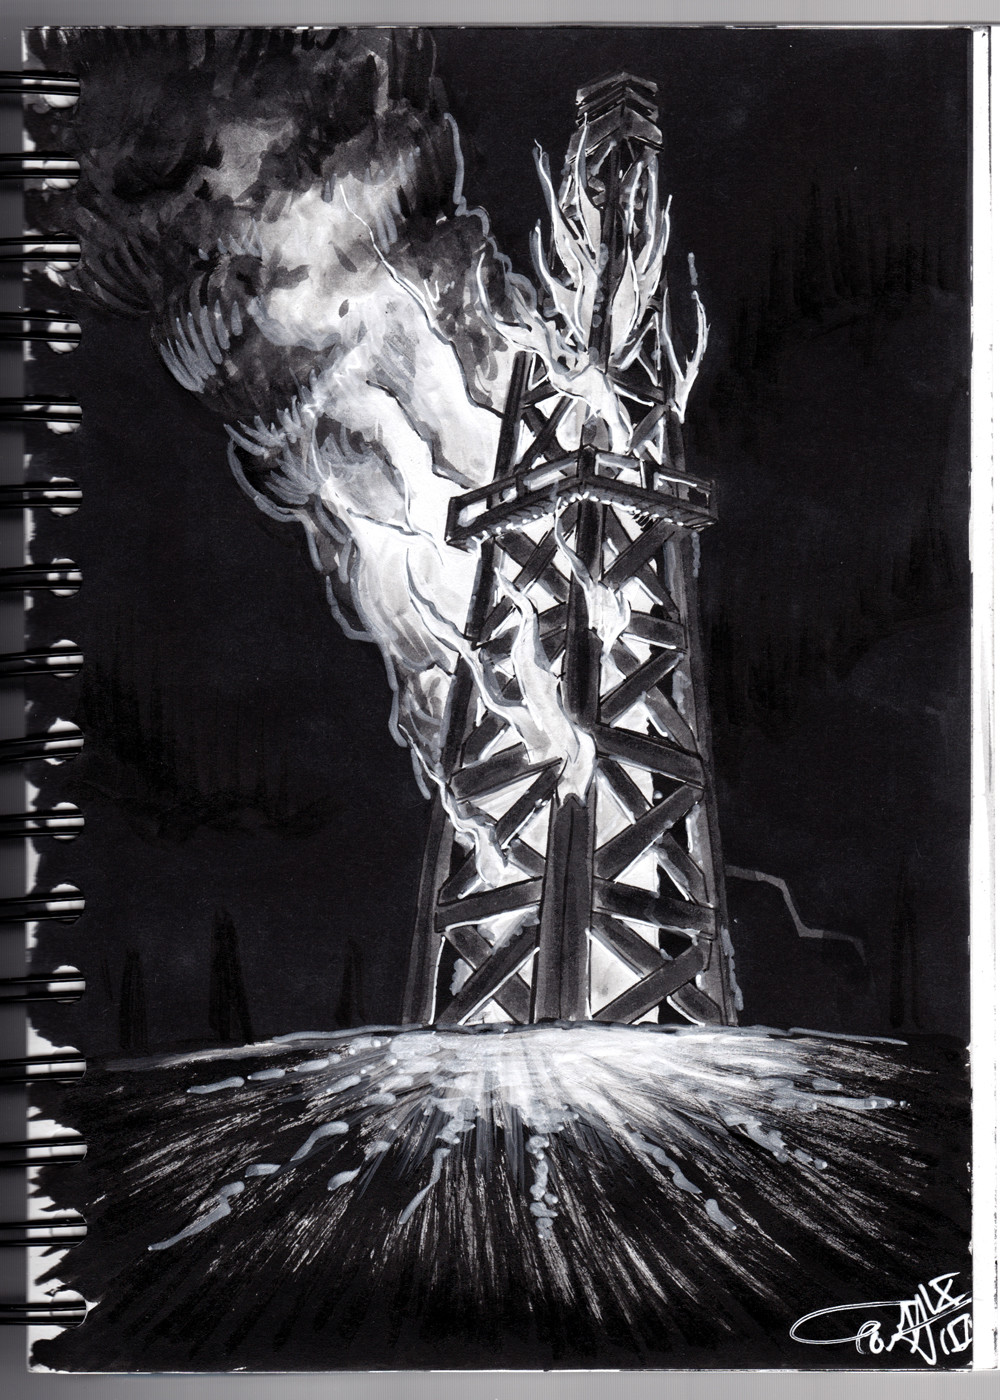 19.Scorched